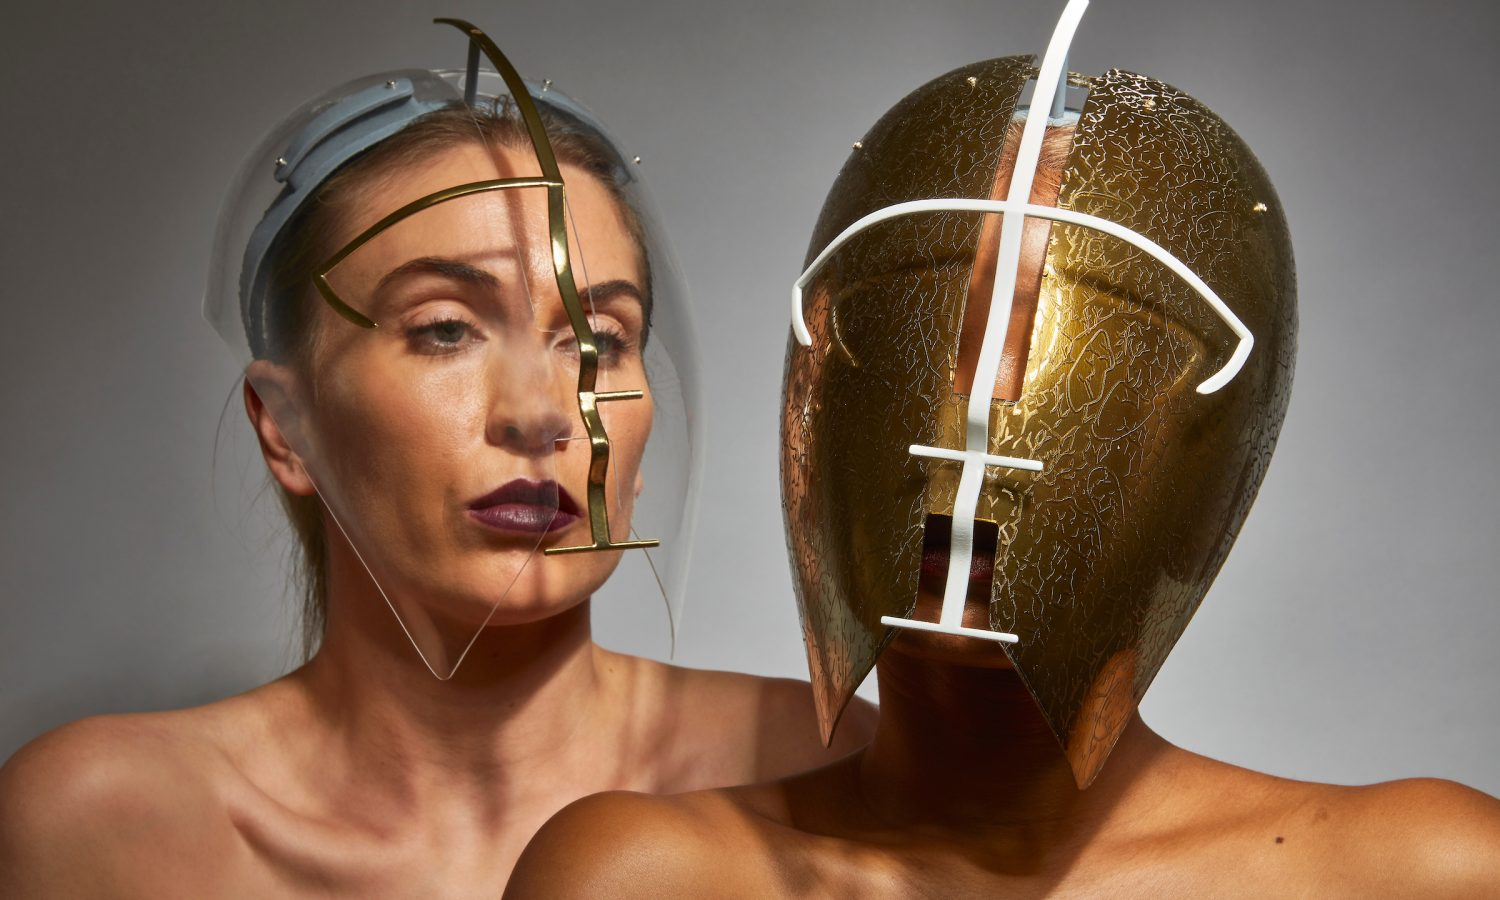 LEXUS COLLABORATES WITH TOSIN OSHINOWO AND CHRISSA AMUAH TO PRESENT A COLLECTION OF HEADPIECES THAT CELEBRATE INNOVATION THROUGH DESIGN AND CRAFTSMANSHIP